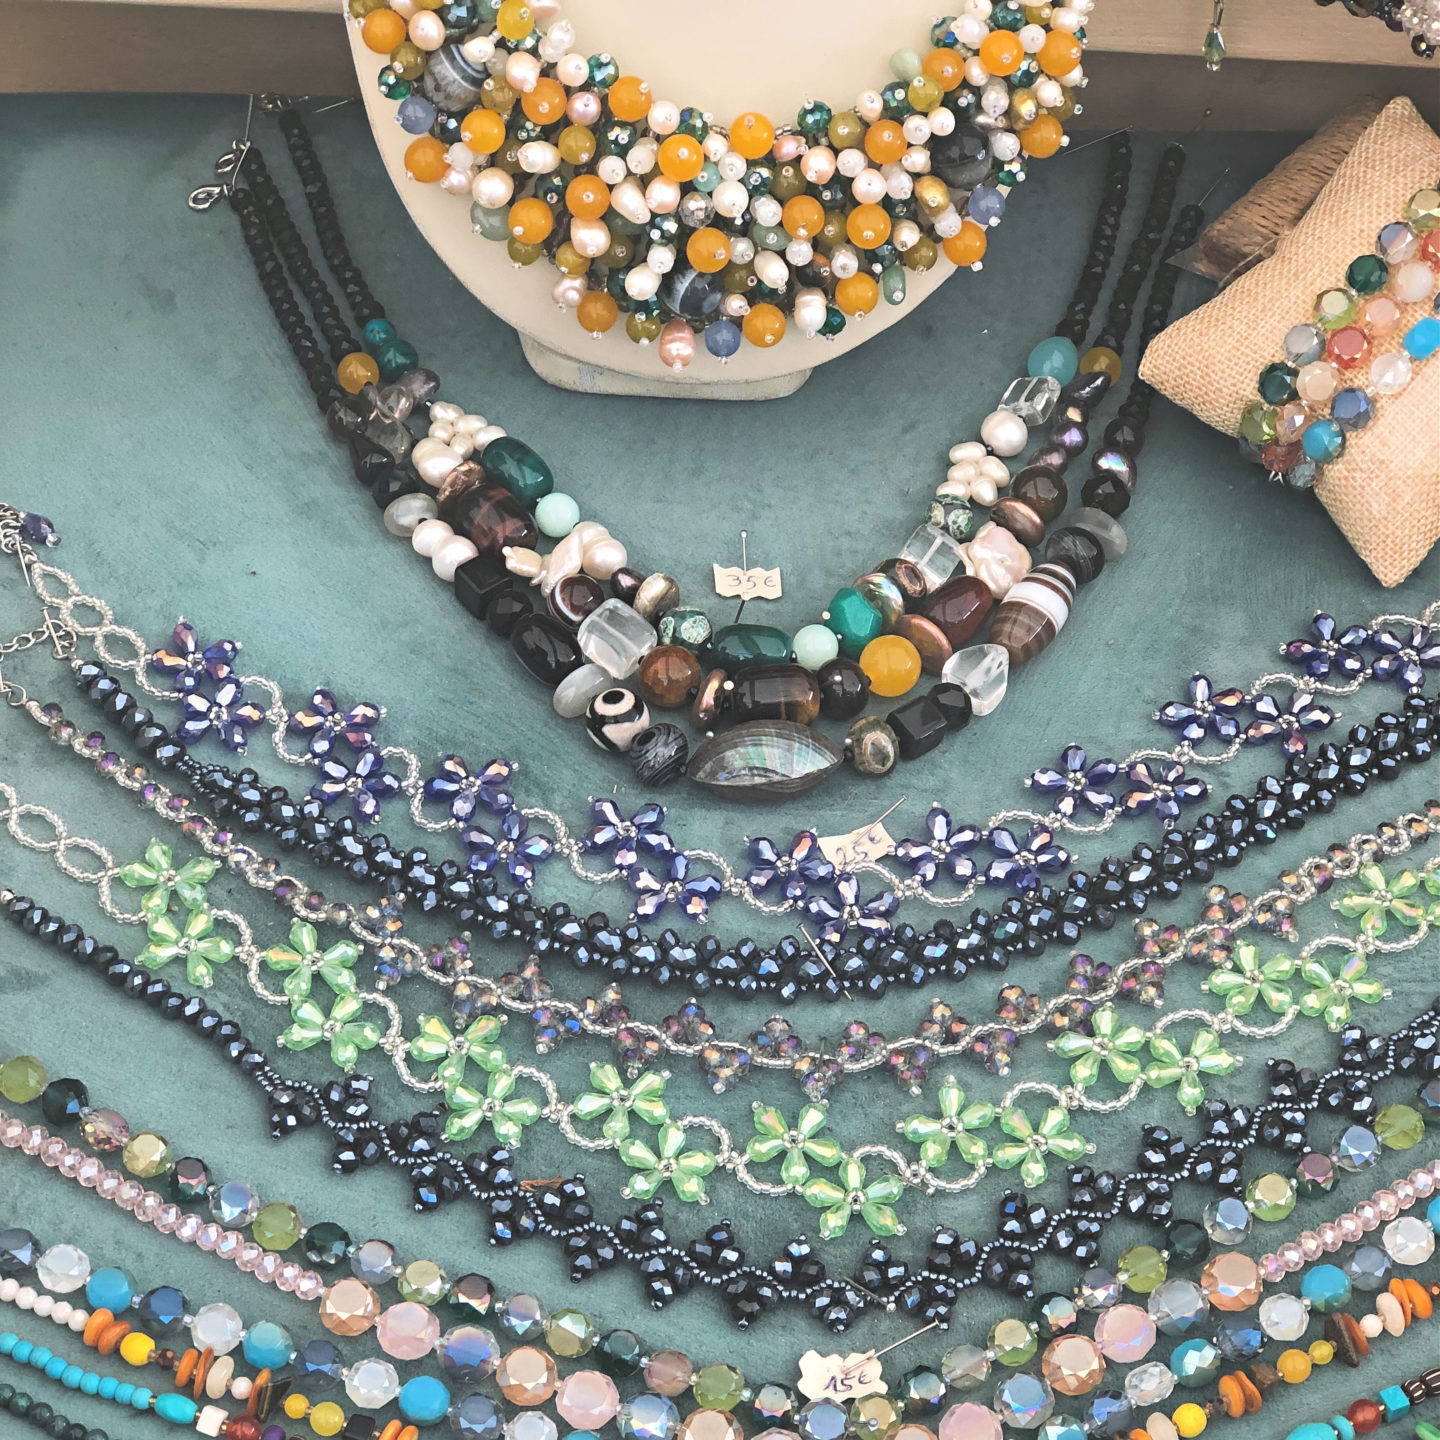 Necklaces in Grimaud market